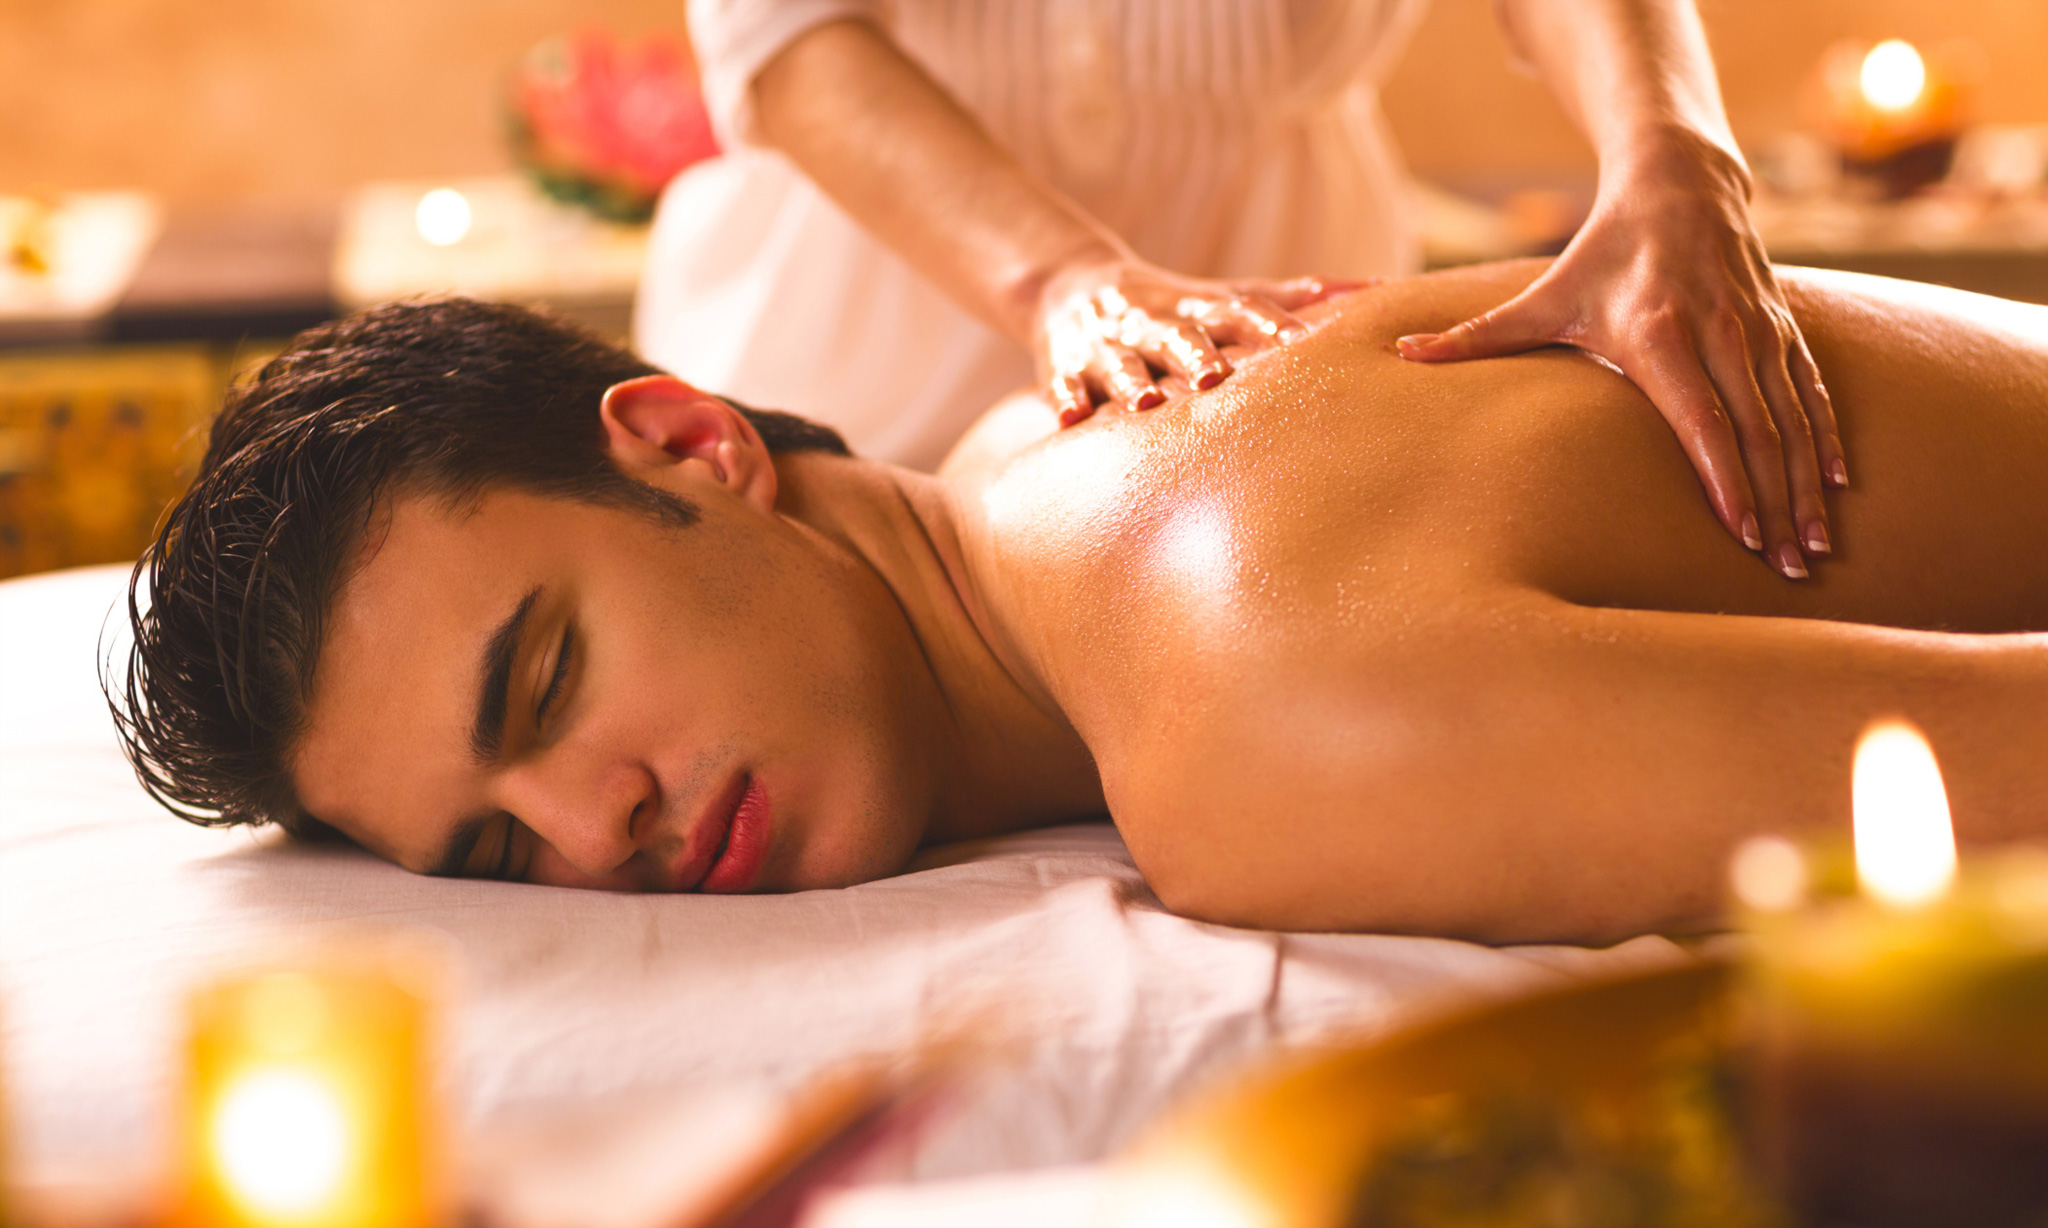 How do you get maximum benefit from a massage therapy?